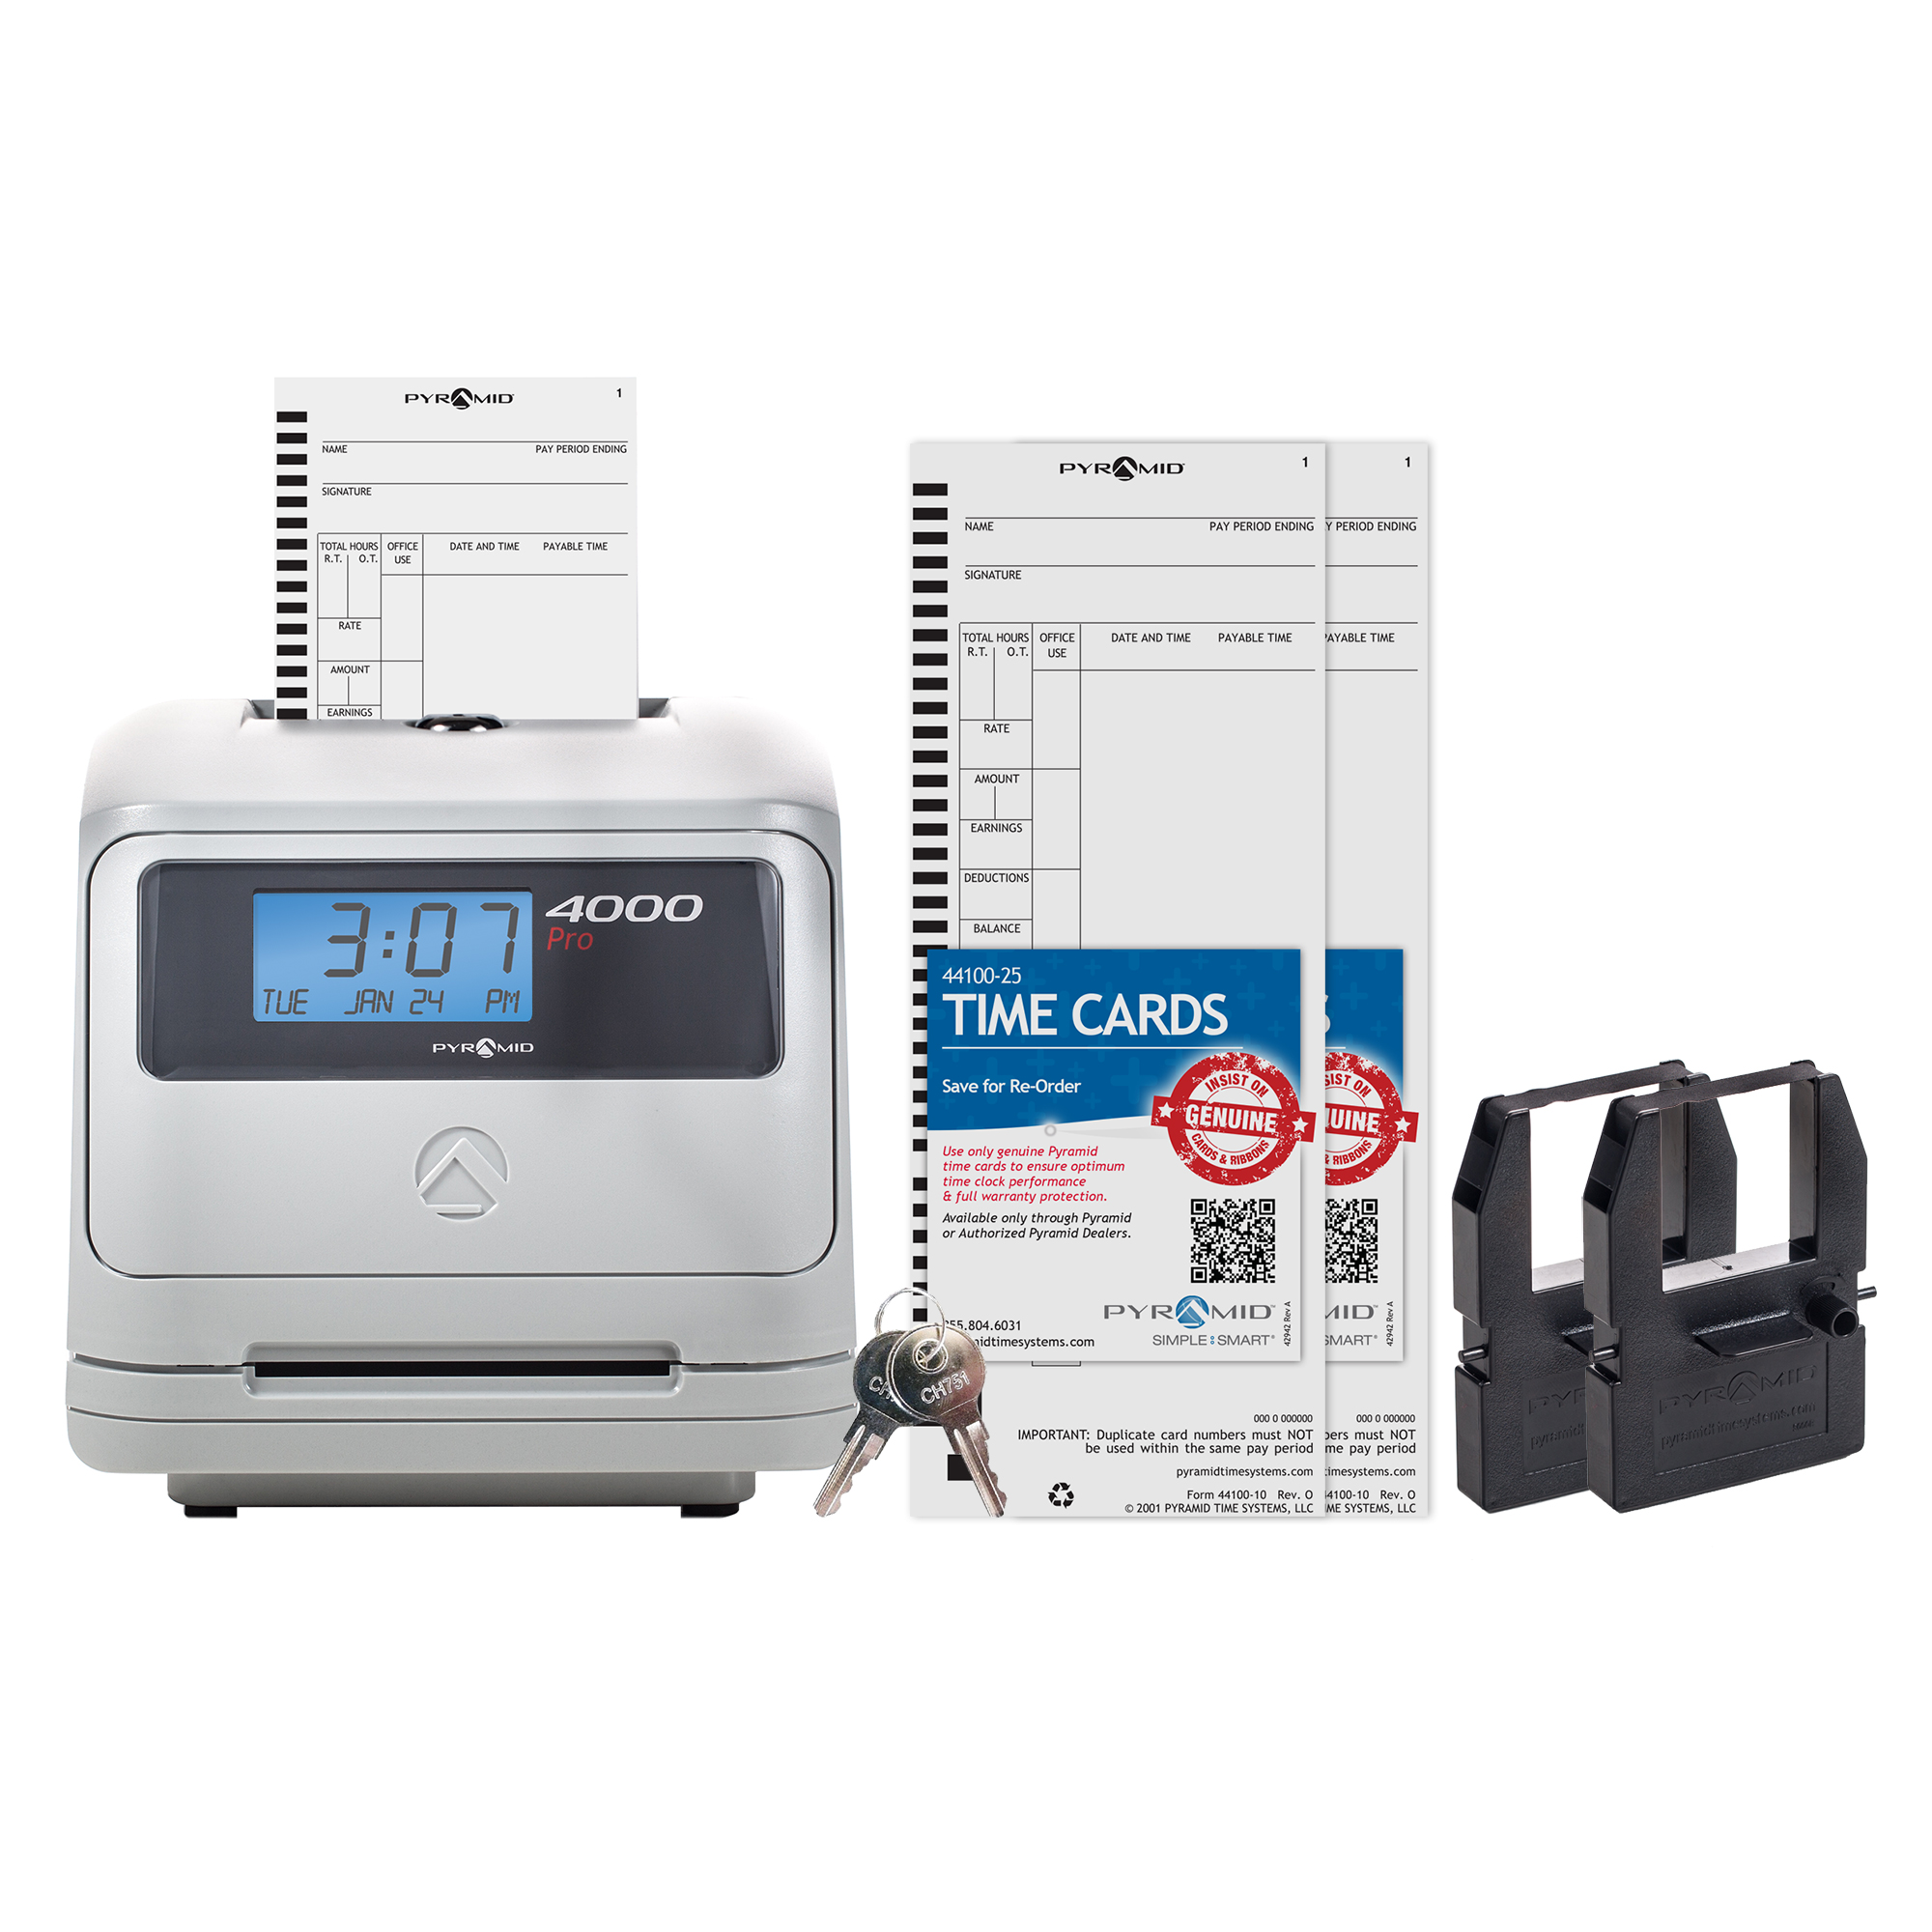 Pyramid 4000 Auto Totaling Time Clock Bundle, includes 225 time cards, 2 ribbon cartridges